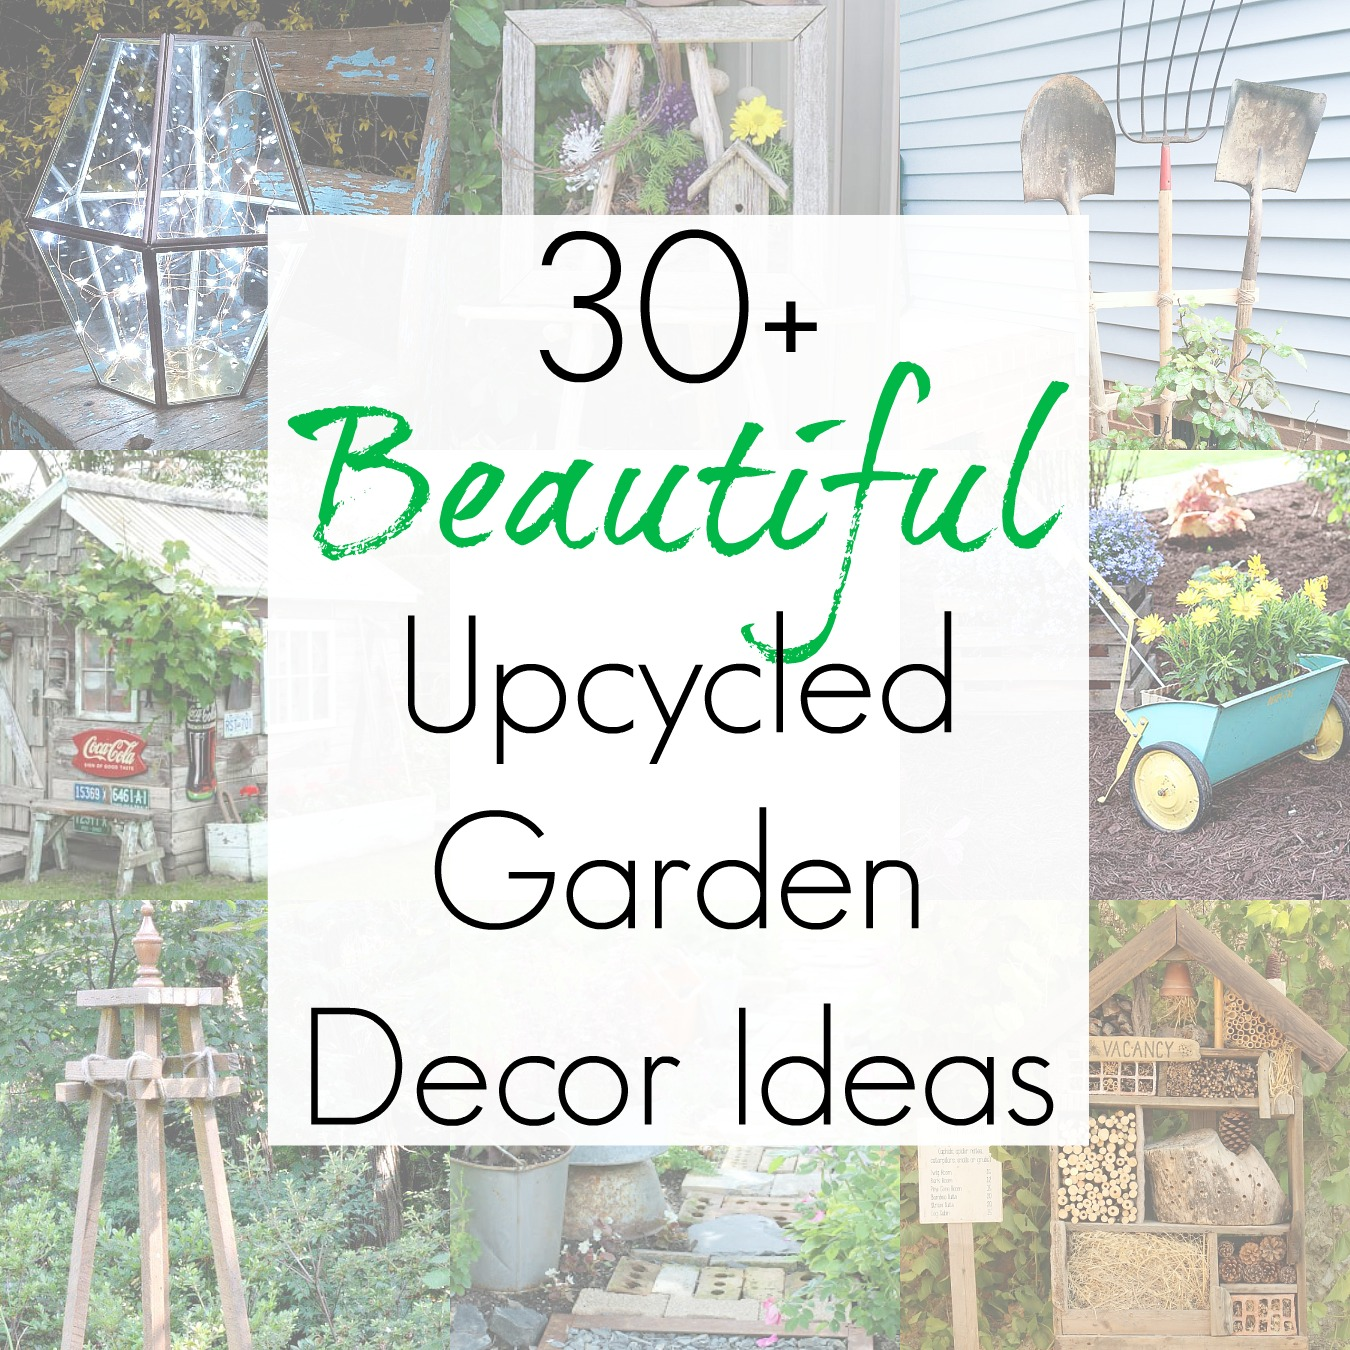 Upcycled Garden Ideas And Repurposing Projects For Quirky Garden Ideas